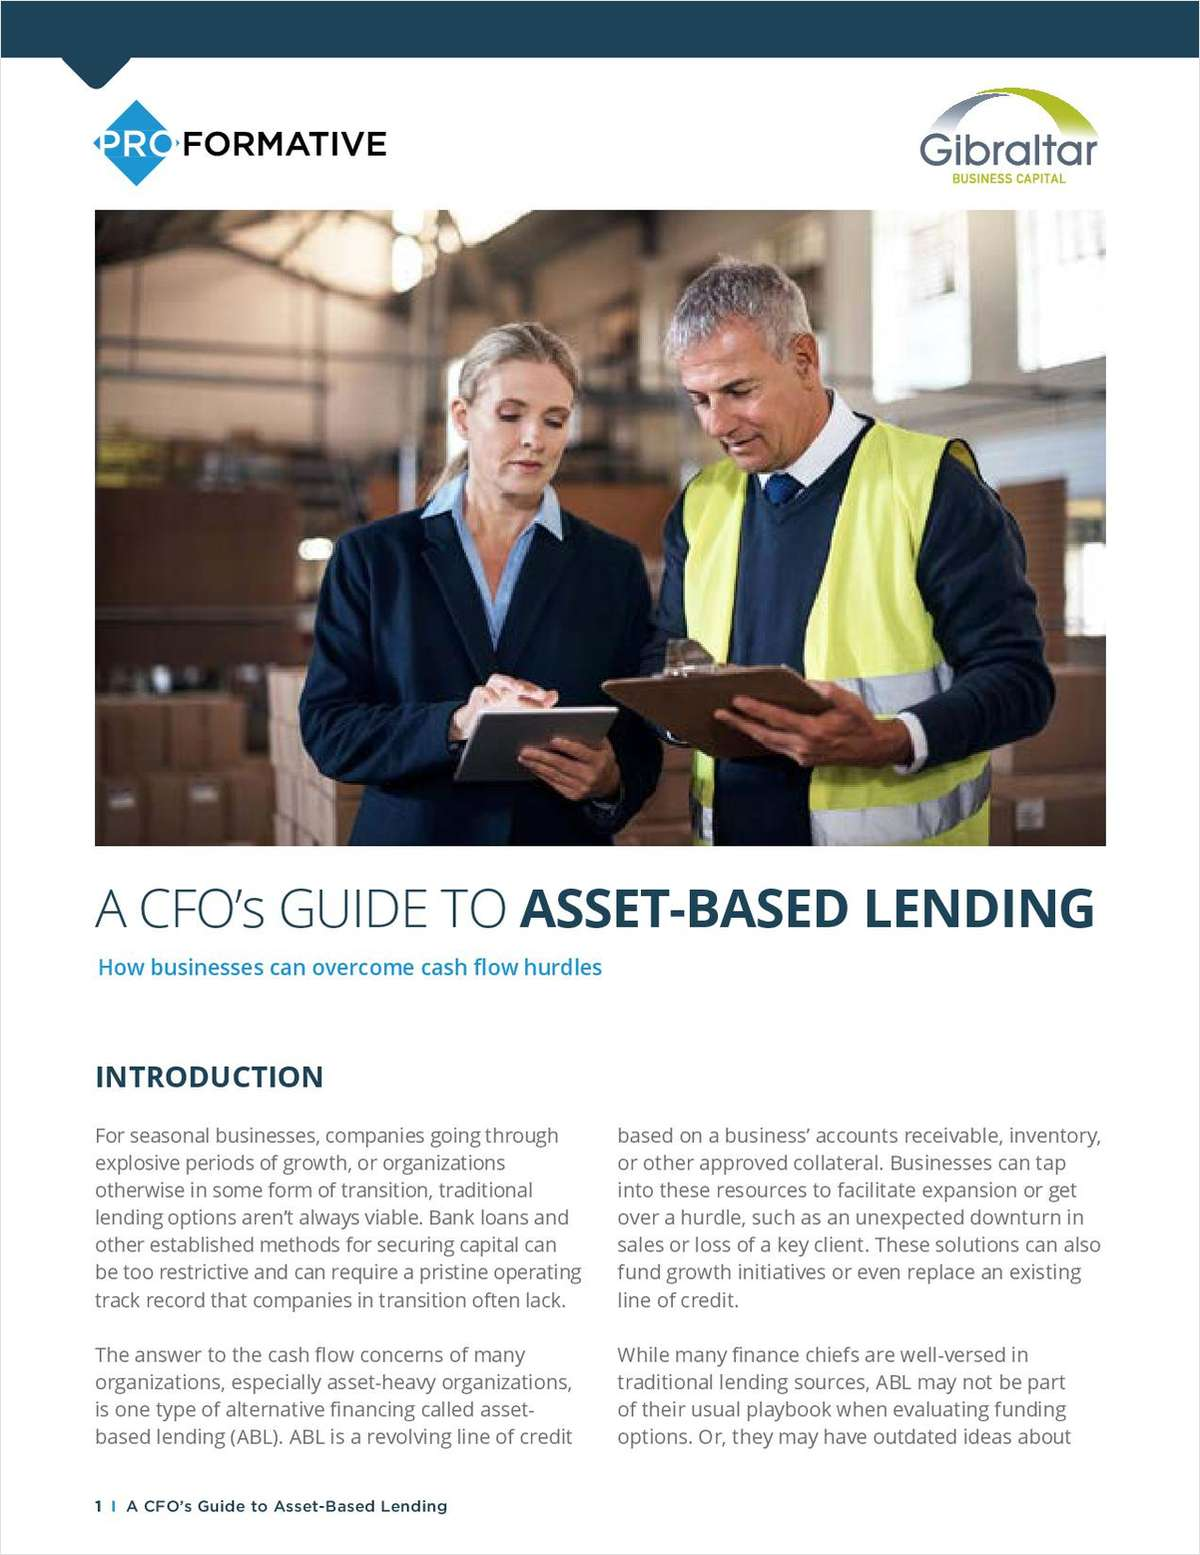 A CFO's GUIDE TO ASSET-BASED LENDING